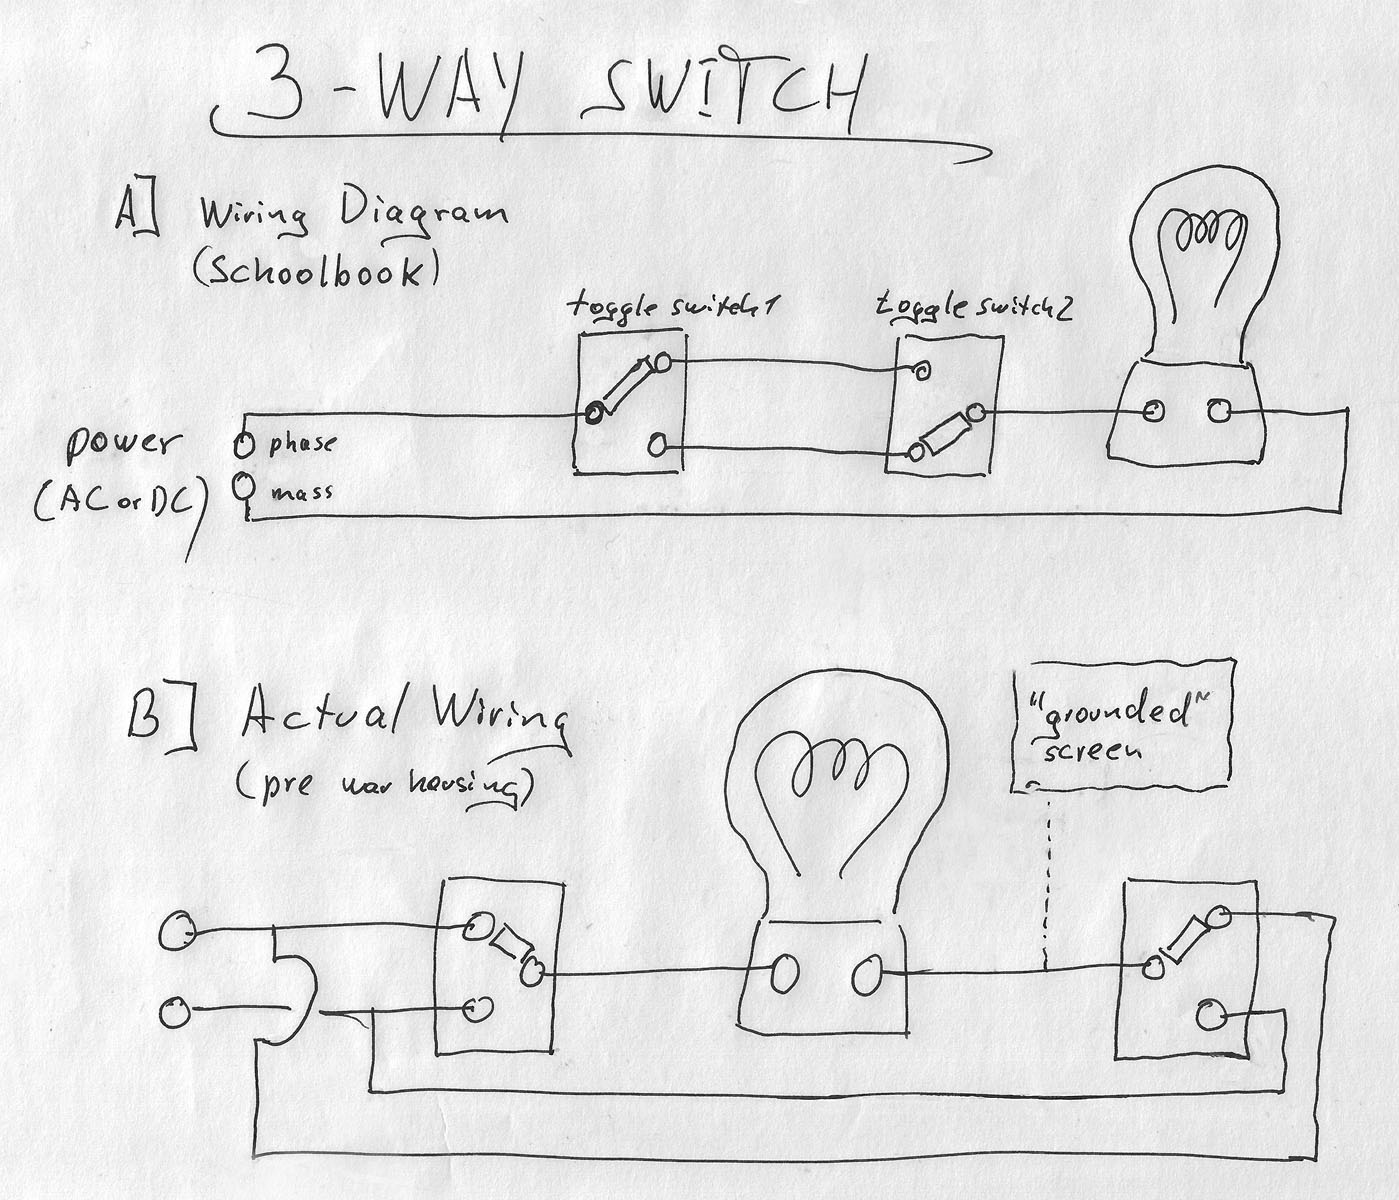 how to wire 3 way switch diagram harley davidson golf cart wiring diagrams get free image about